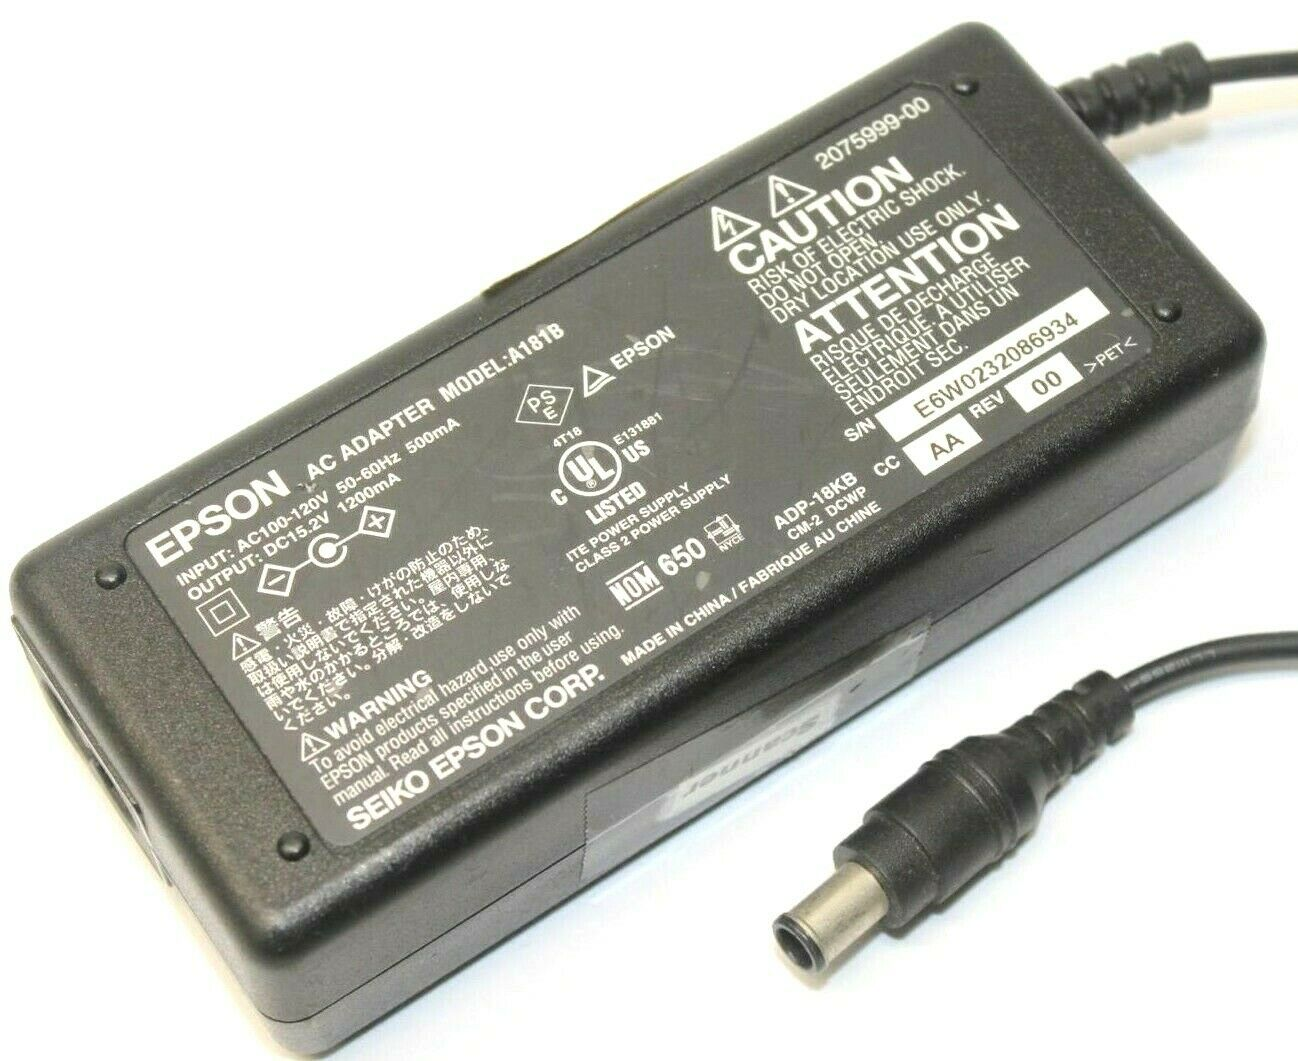 Epson A181B AC Adapter Power Supply Cord Cable Charger  Genuine Original